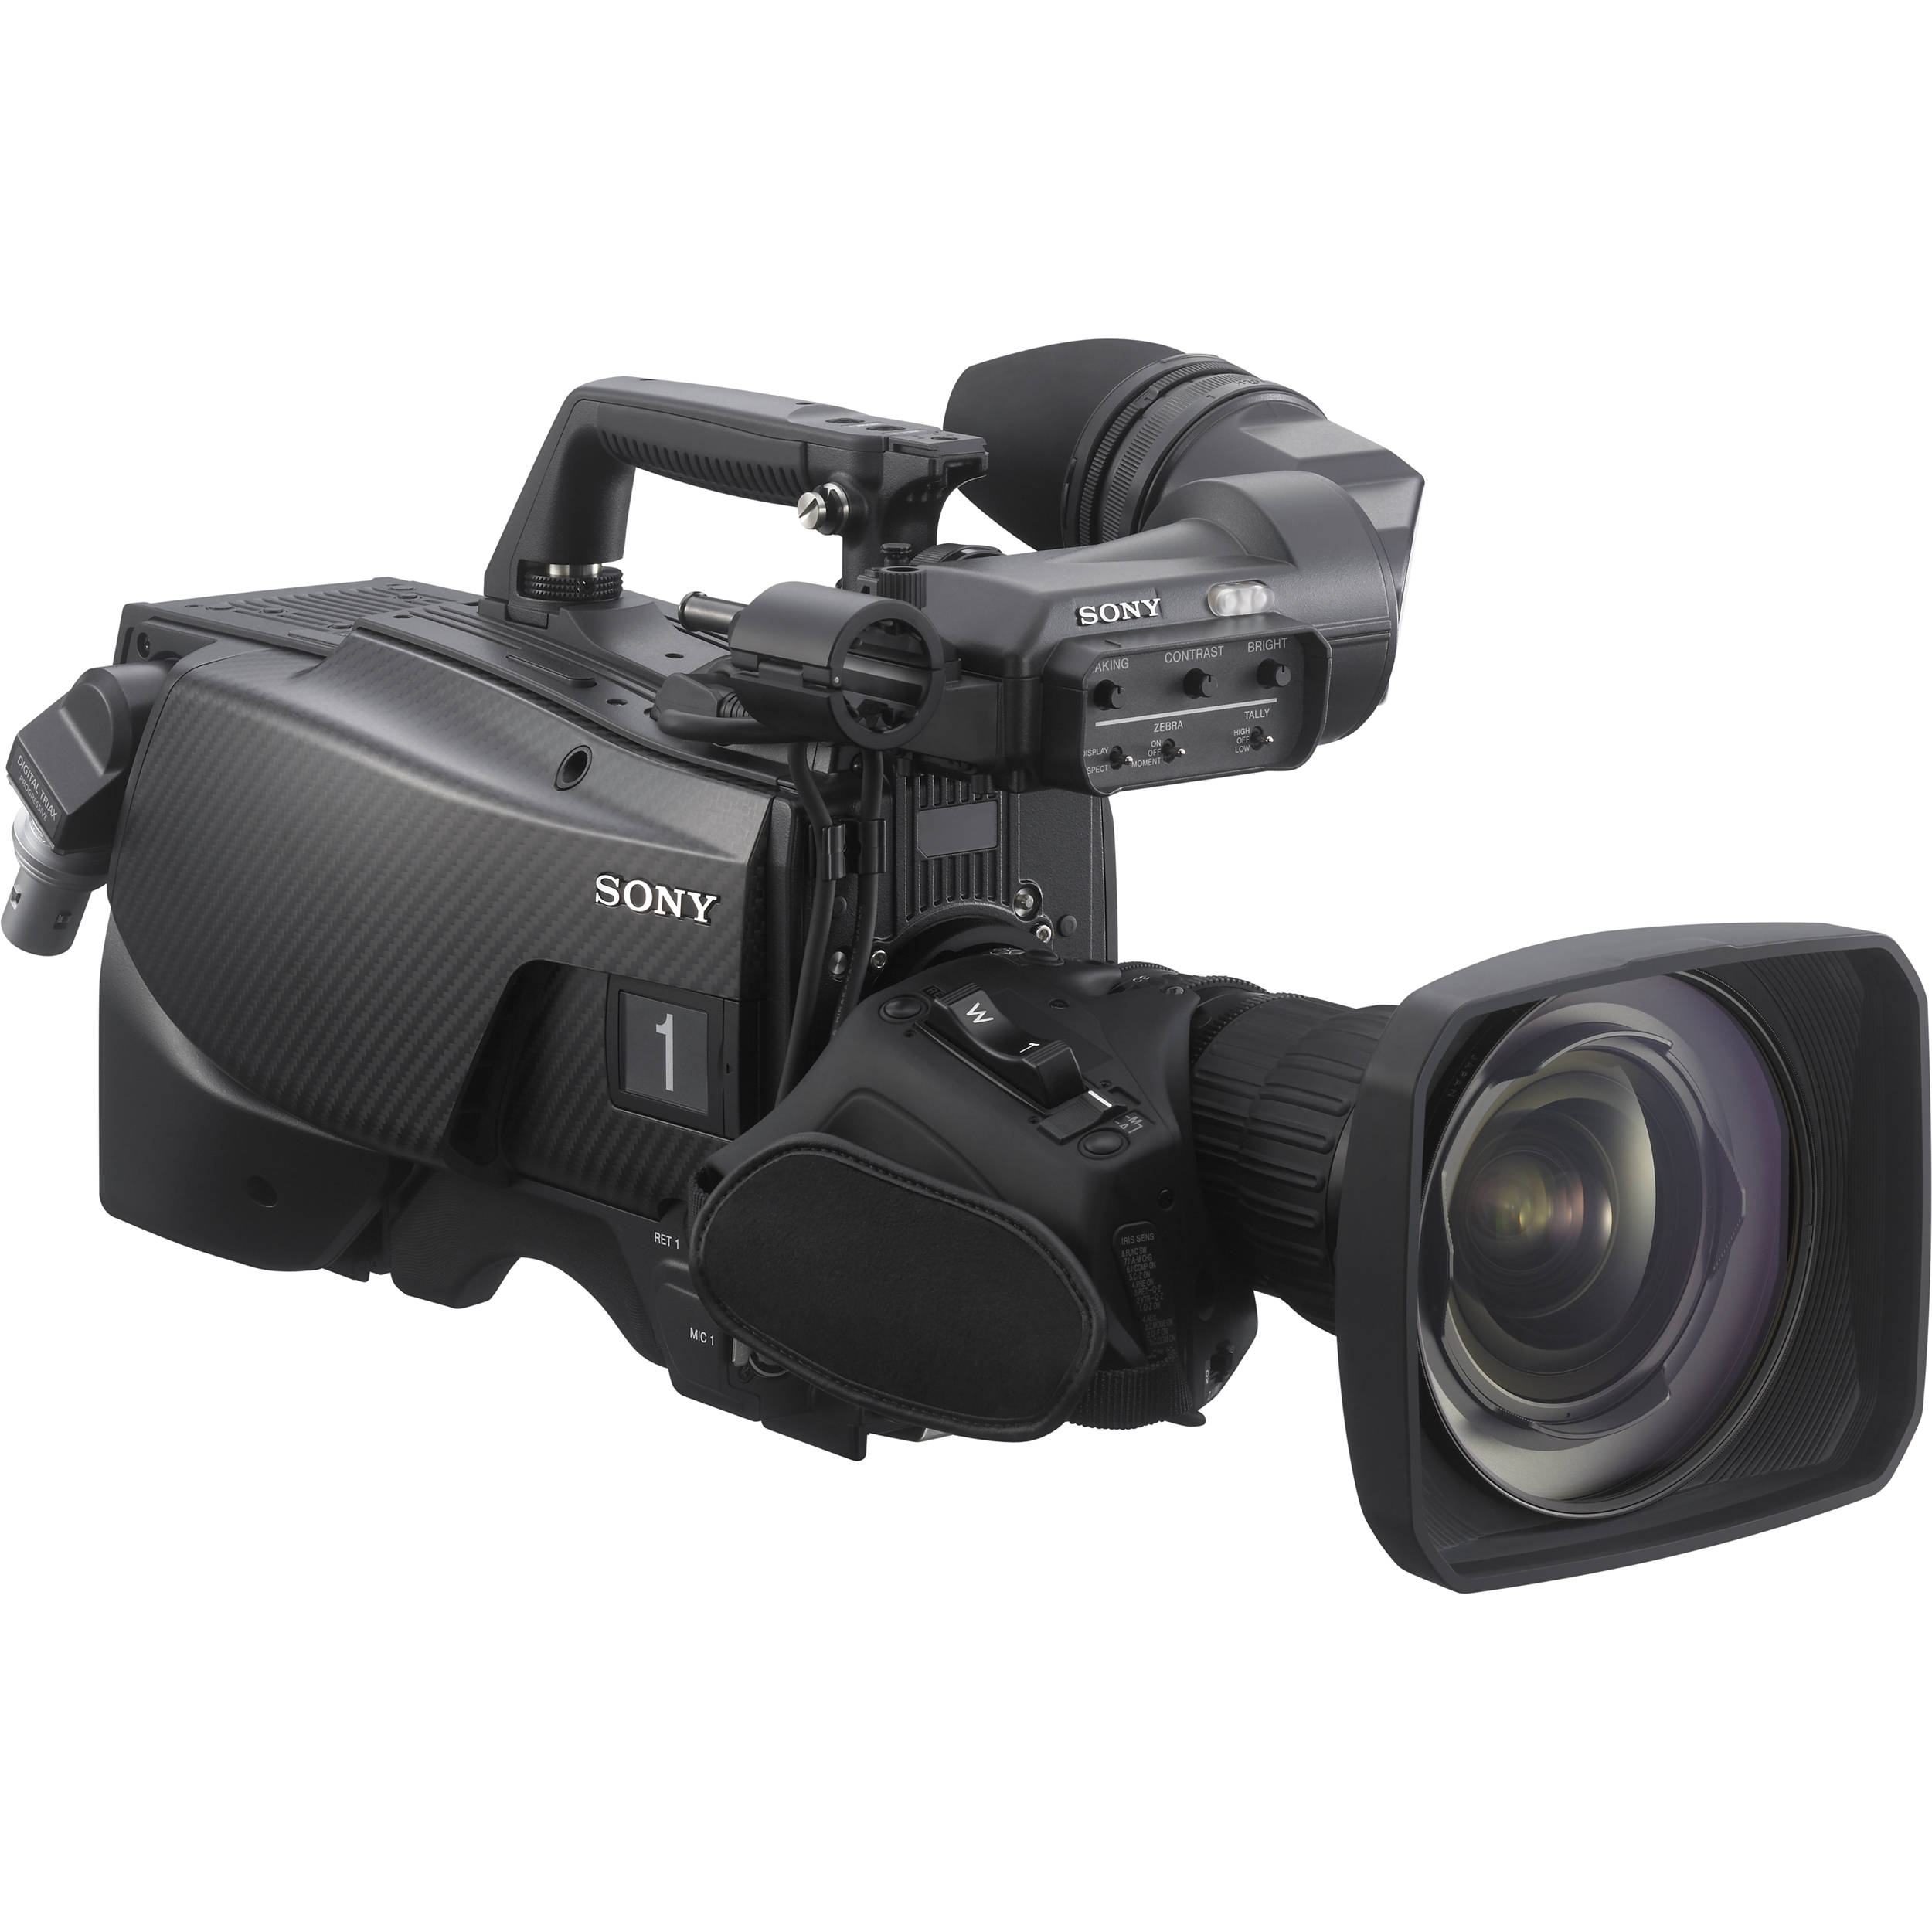 Sony HDC-2570 Multiformat HD Camera